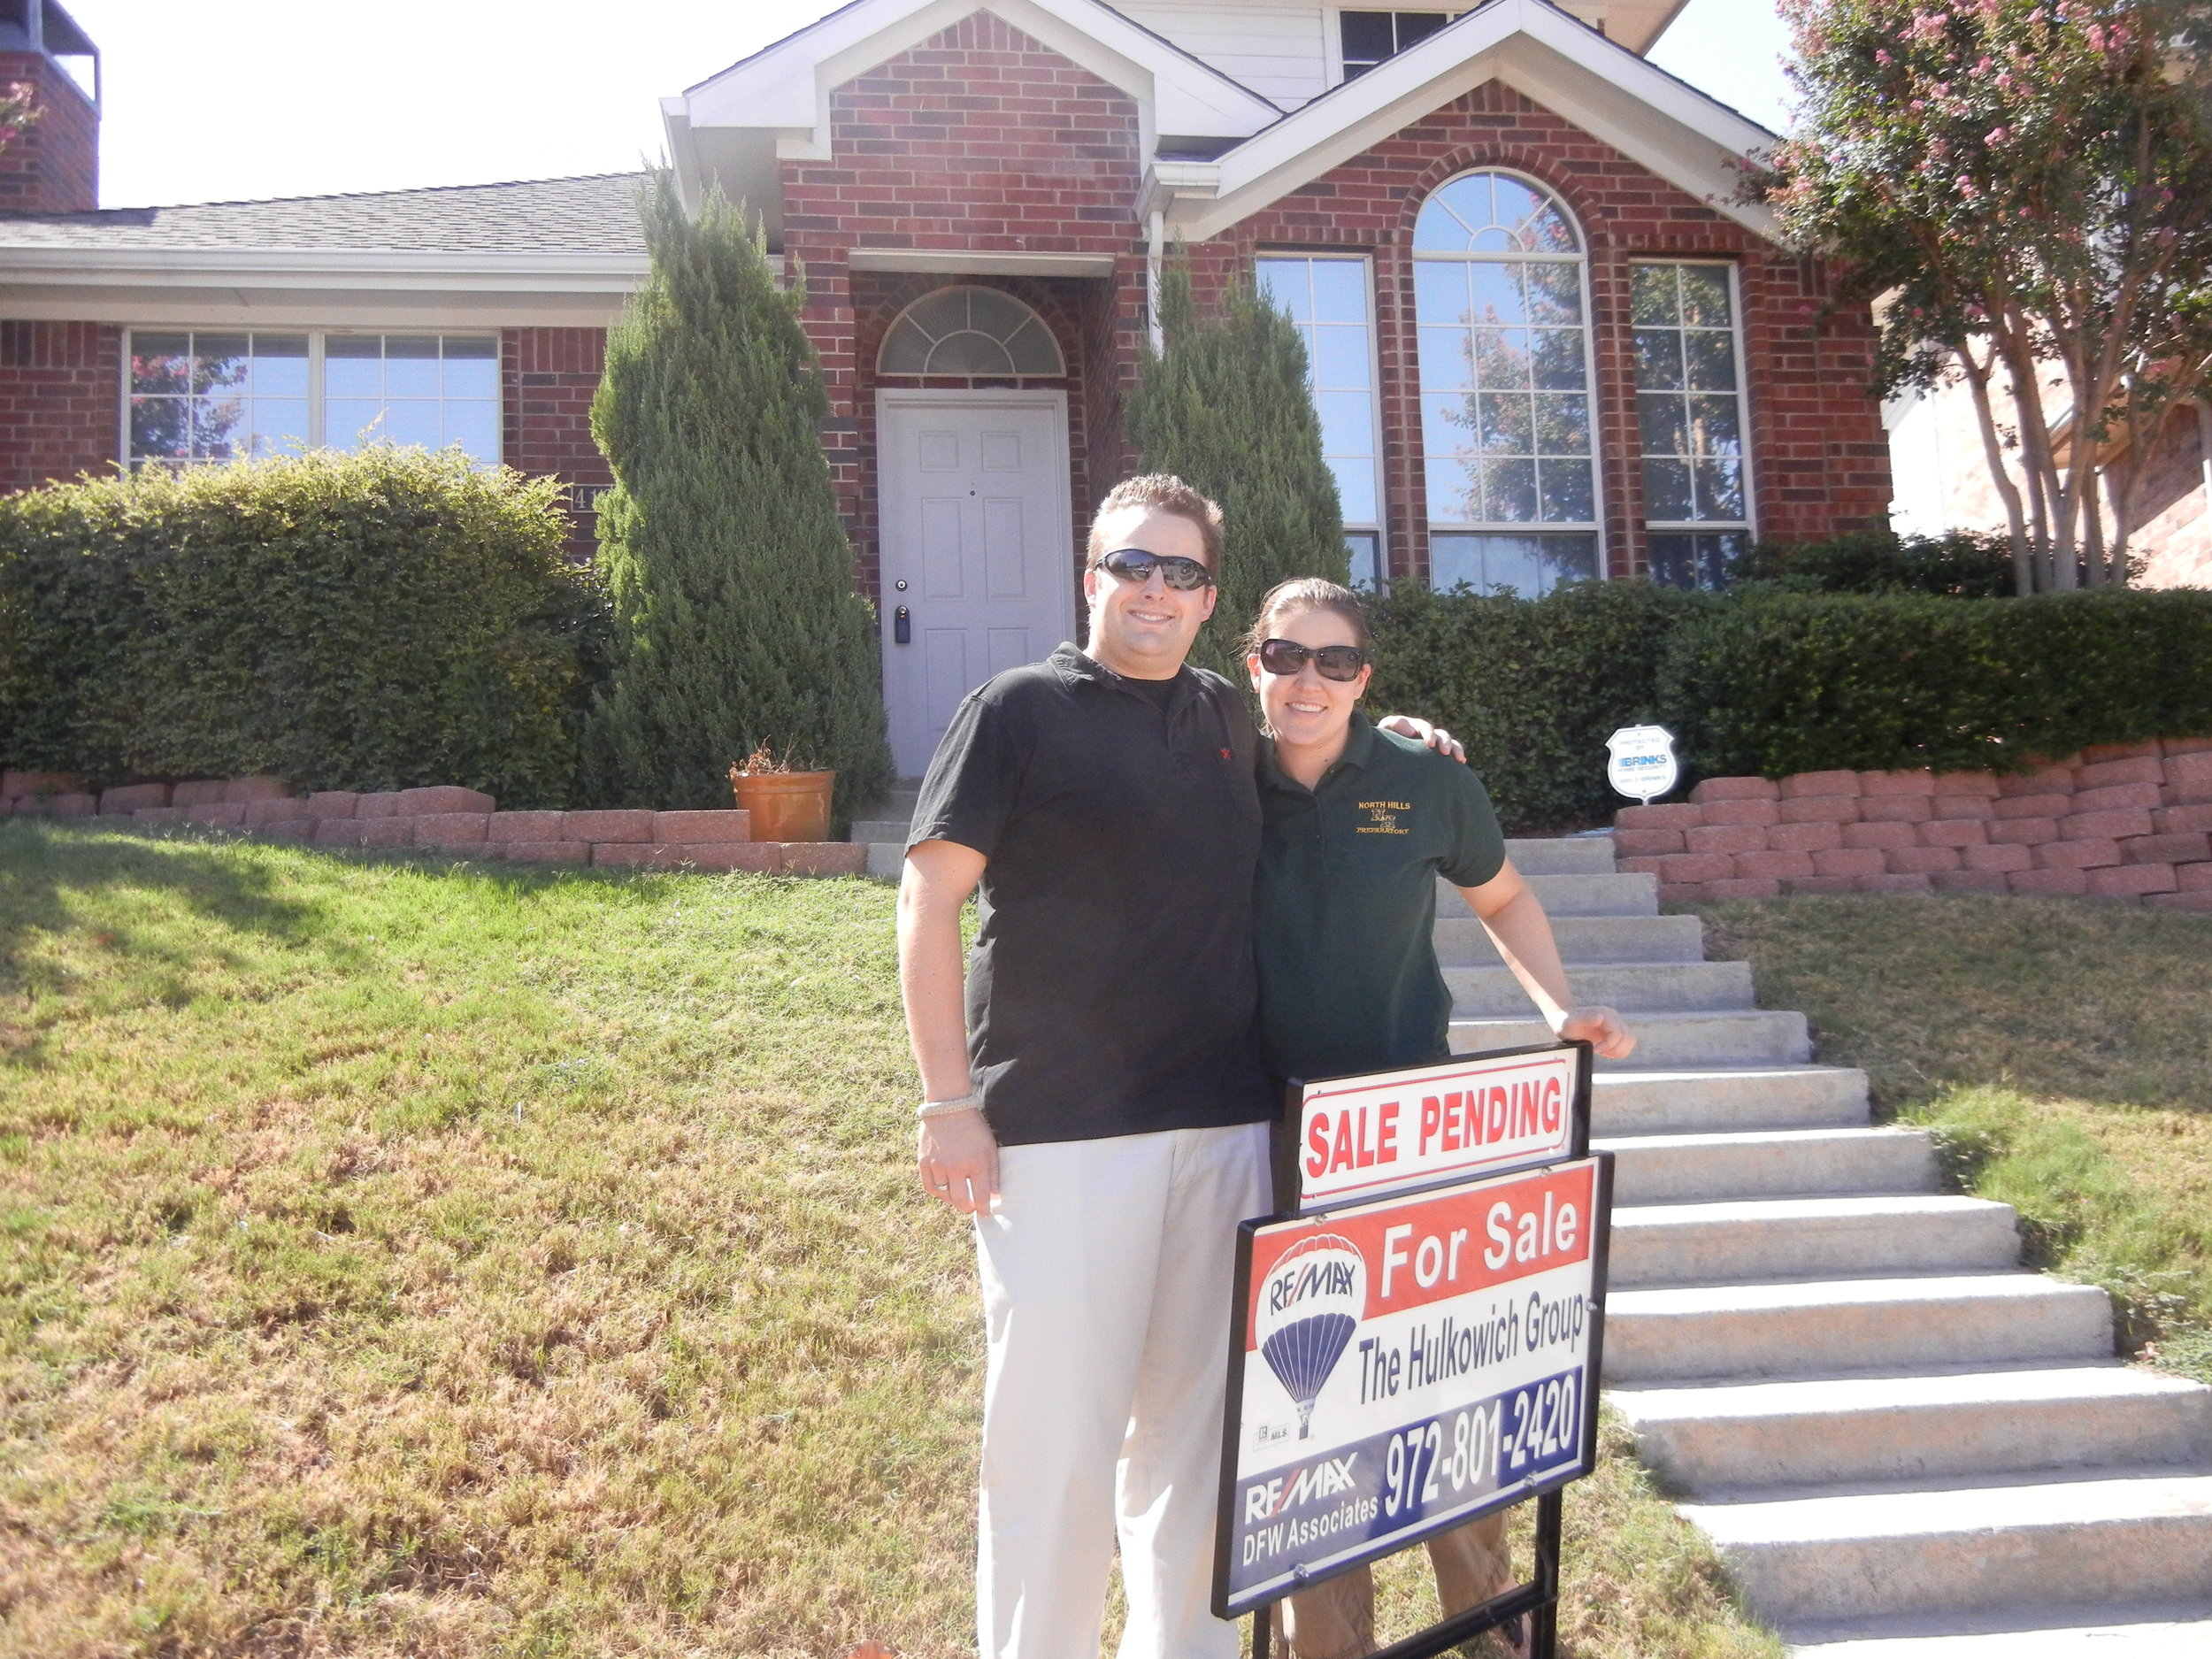 8.9.11 That time we bought our first house!